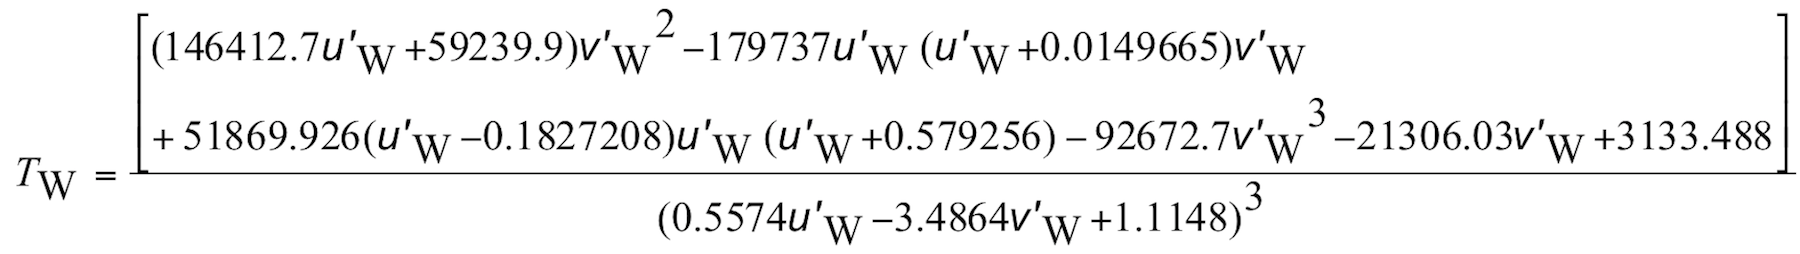 CCT (Tw) Equation 1, enlarged